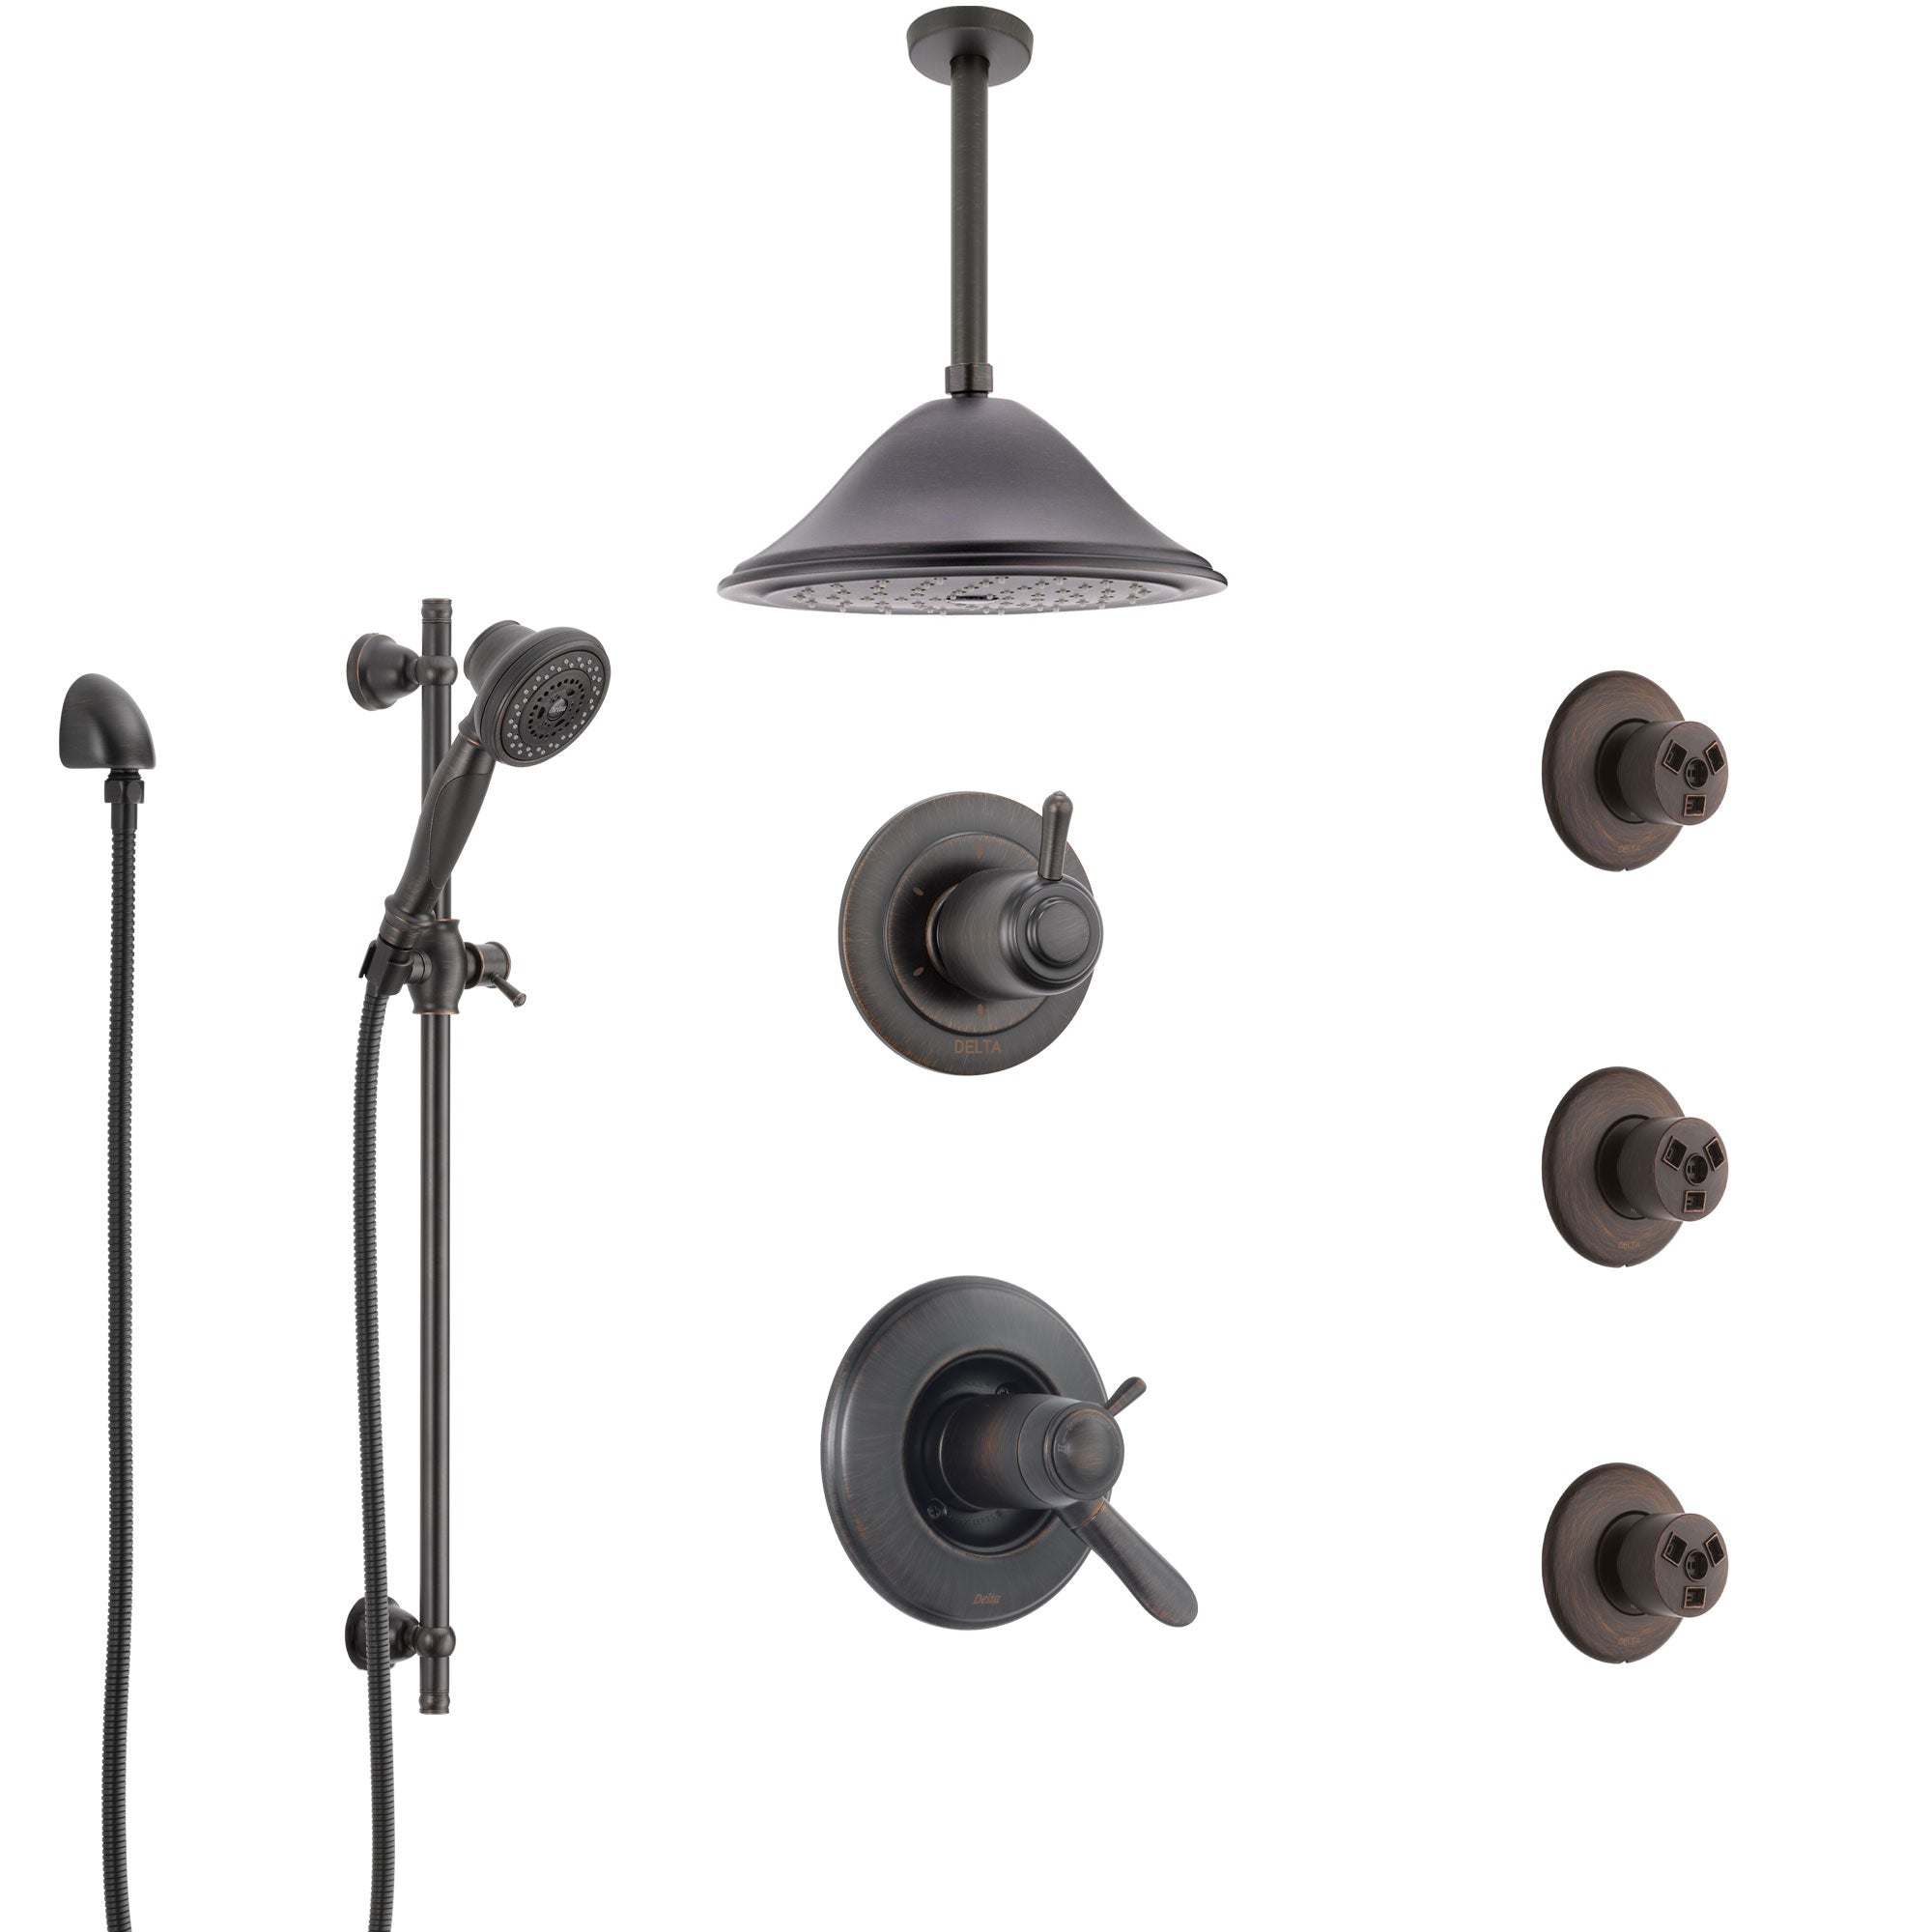 Delta Lahara Venetian Bronze Shower System with Dual Thermostatic Control, Diverter, Ceiling Showerhead, 3 Body Sprays, and Hand Shower SS17T382RB8